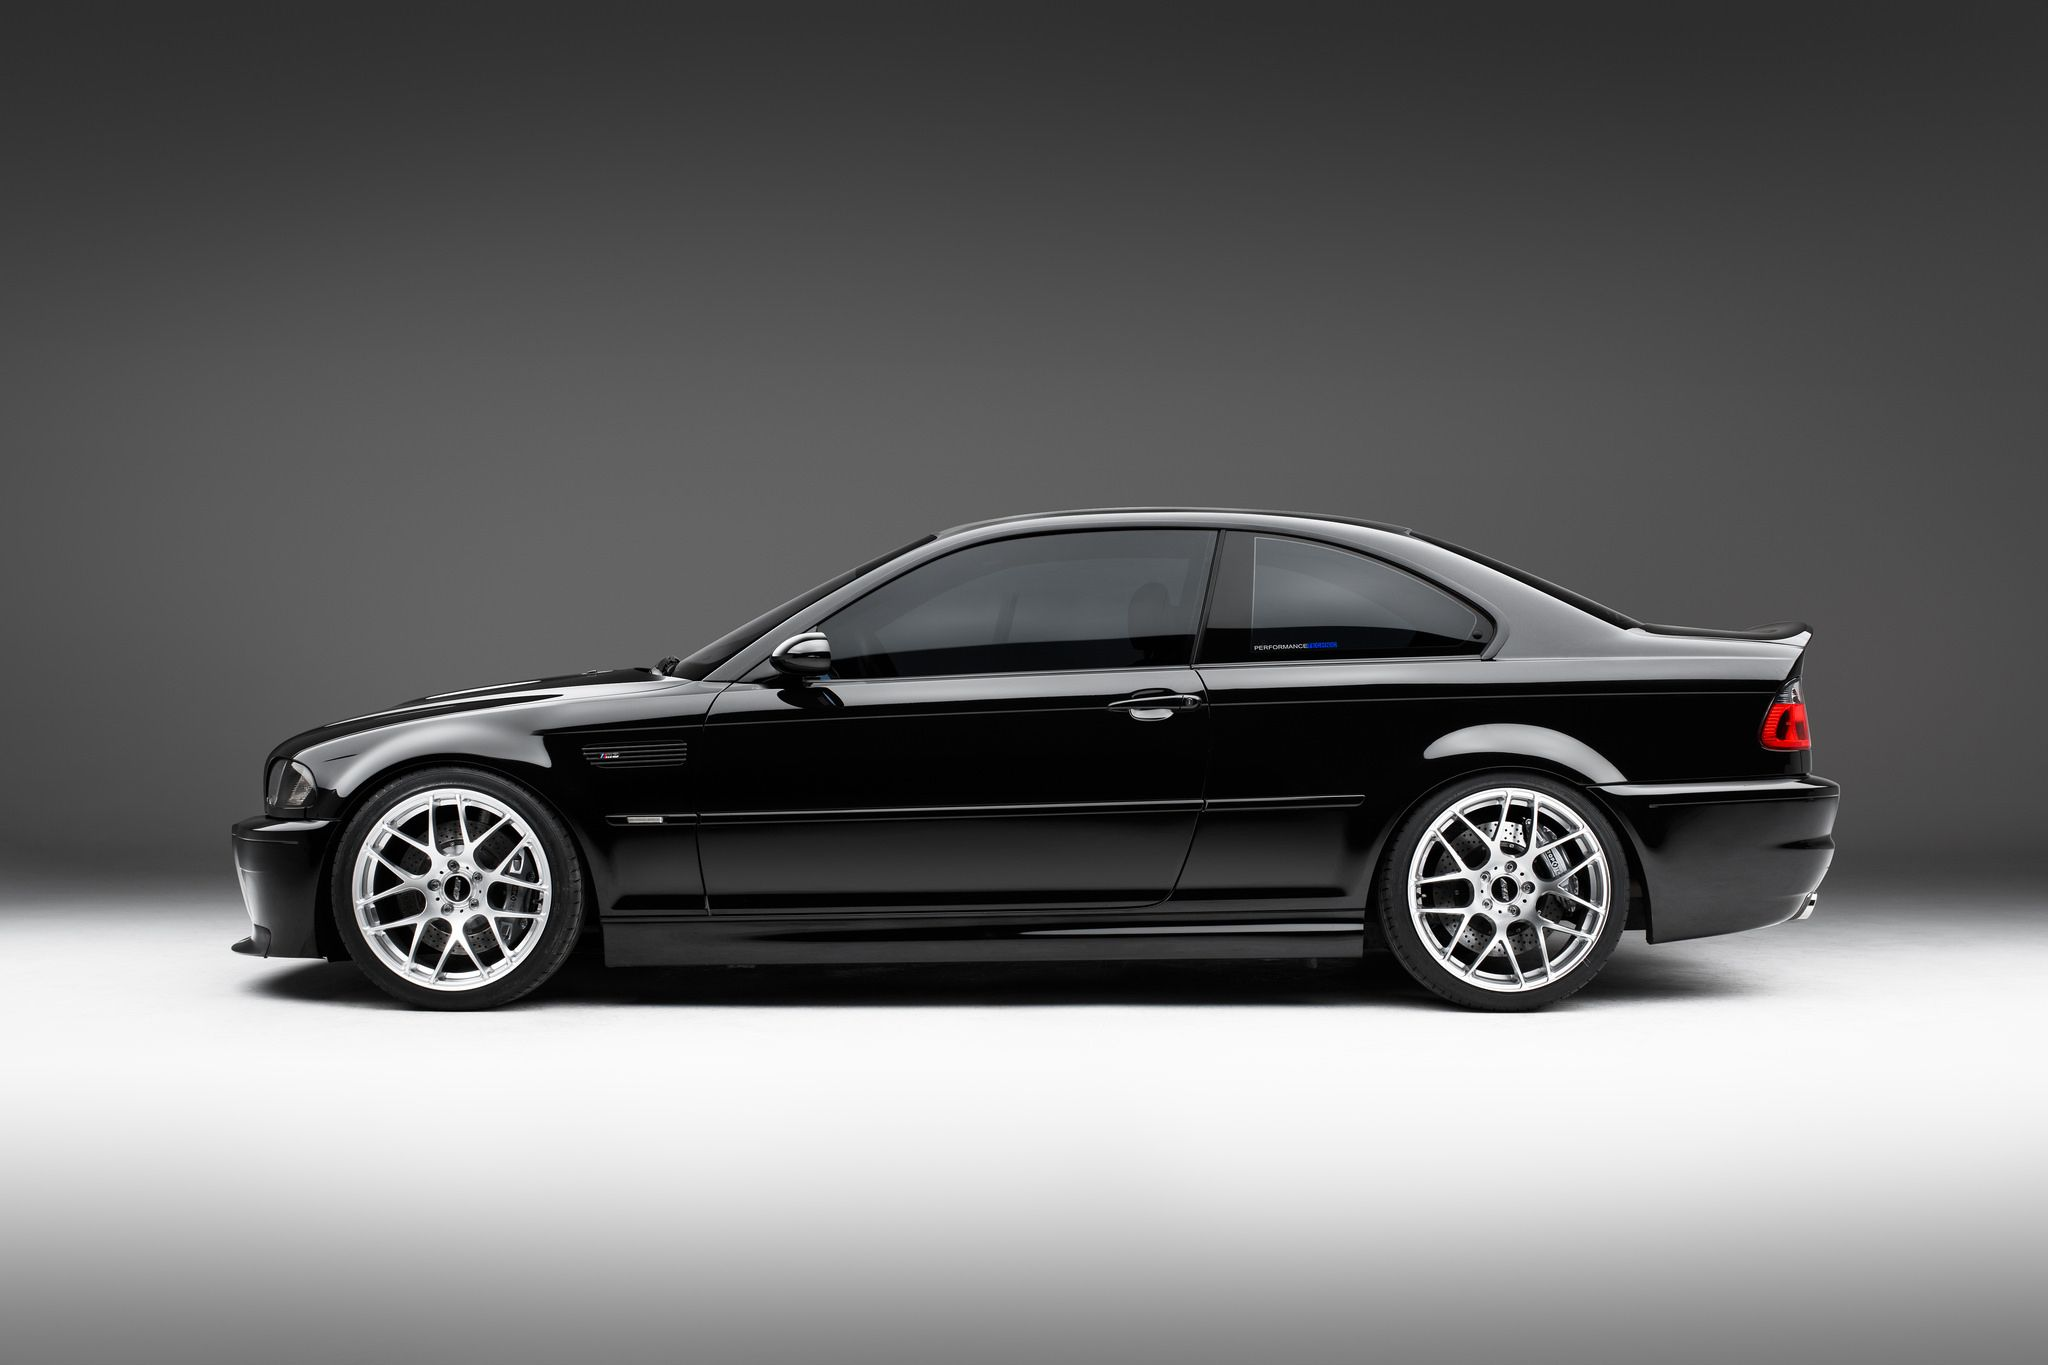 Bmw M3 E46 Absolutely One Of The Best Color Combos Imo Carbon